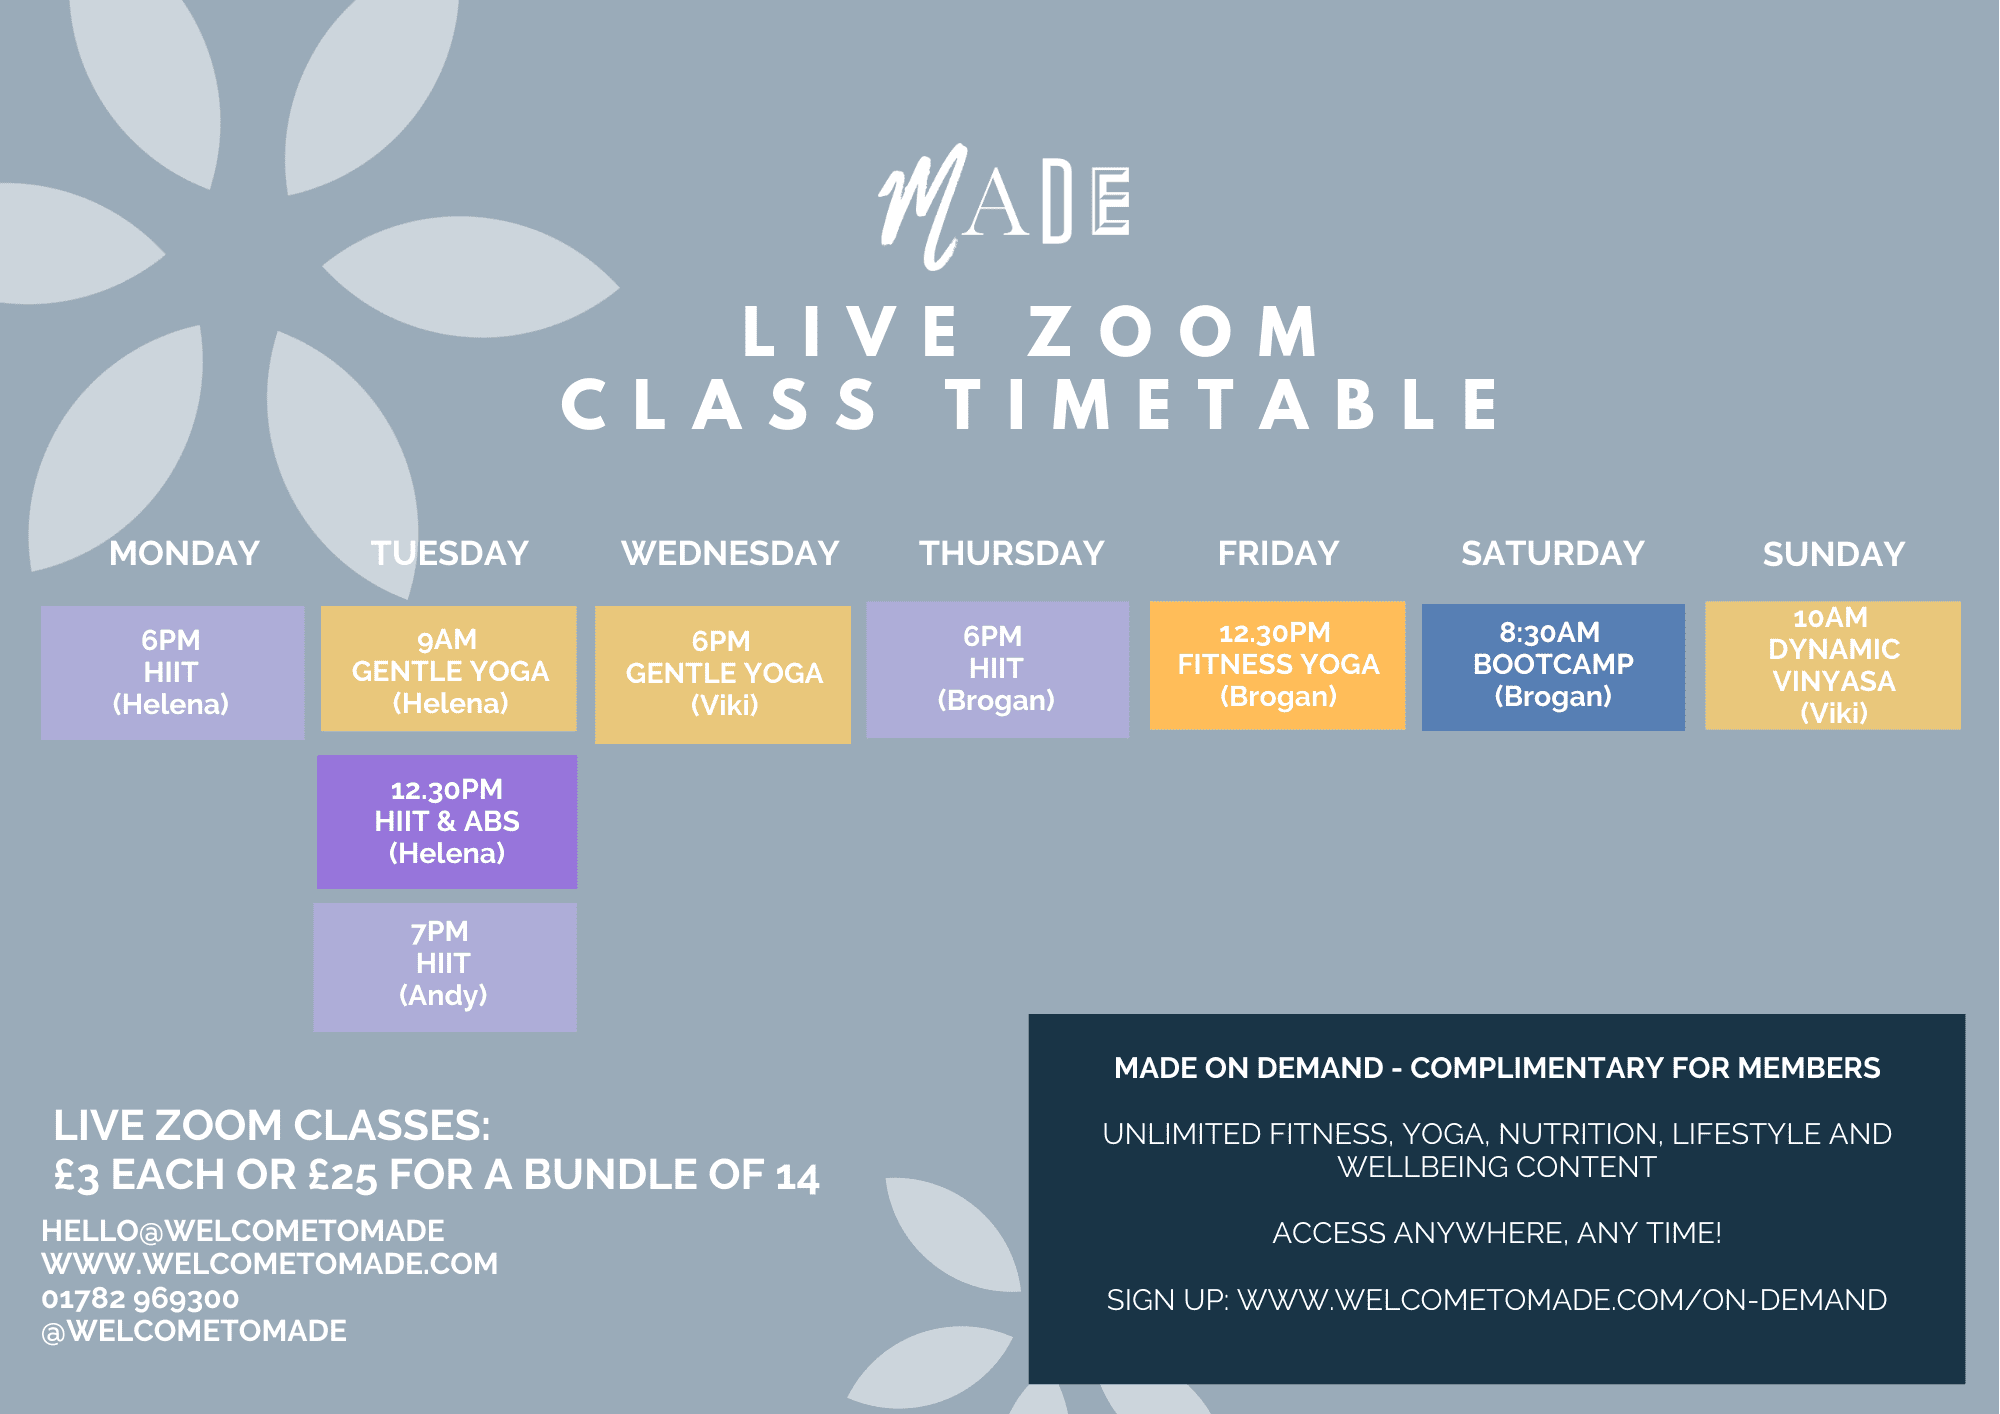 MADE CLASSES TIMETABLES